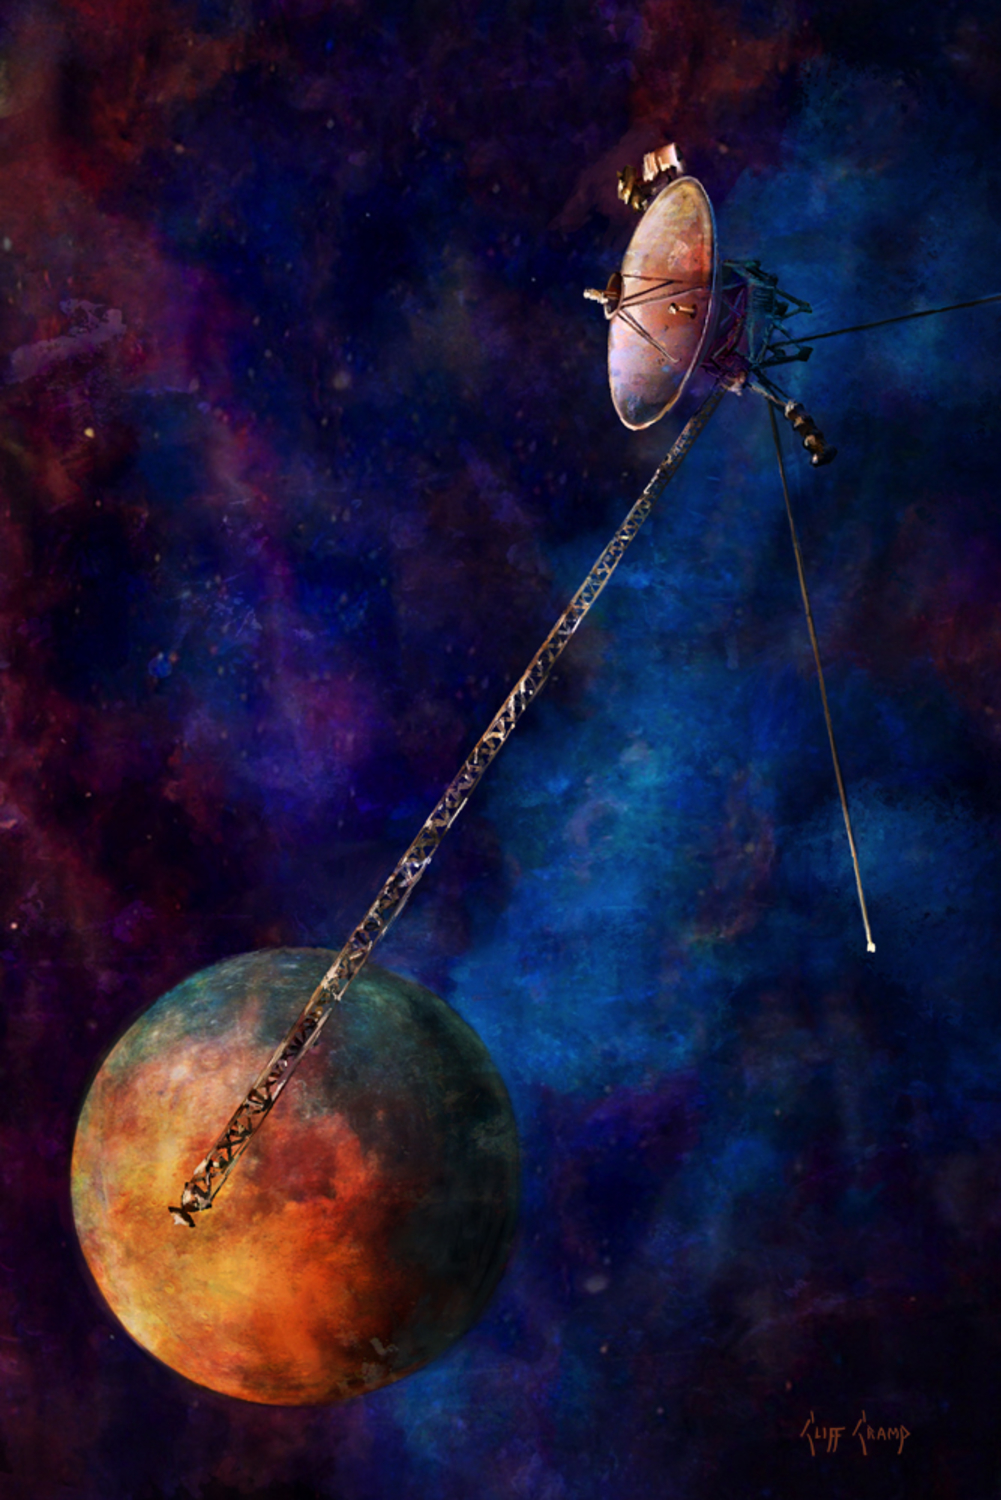 Voyager 1 Artwork by Cliff Cramp